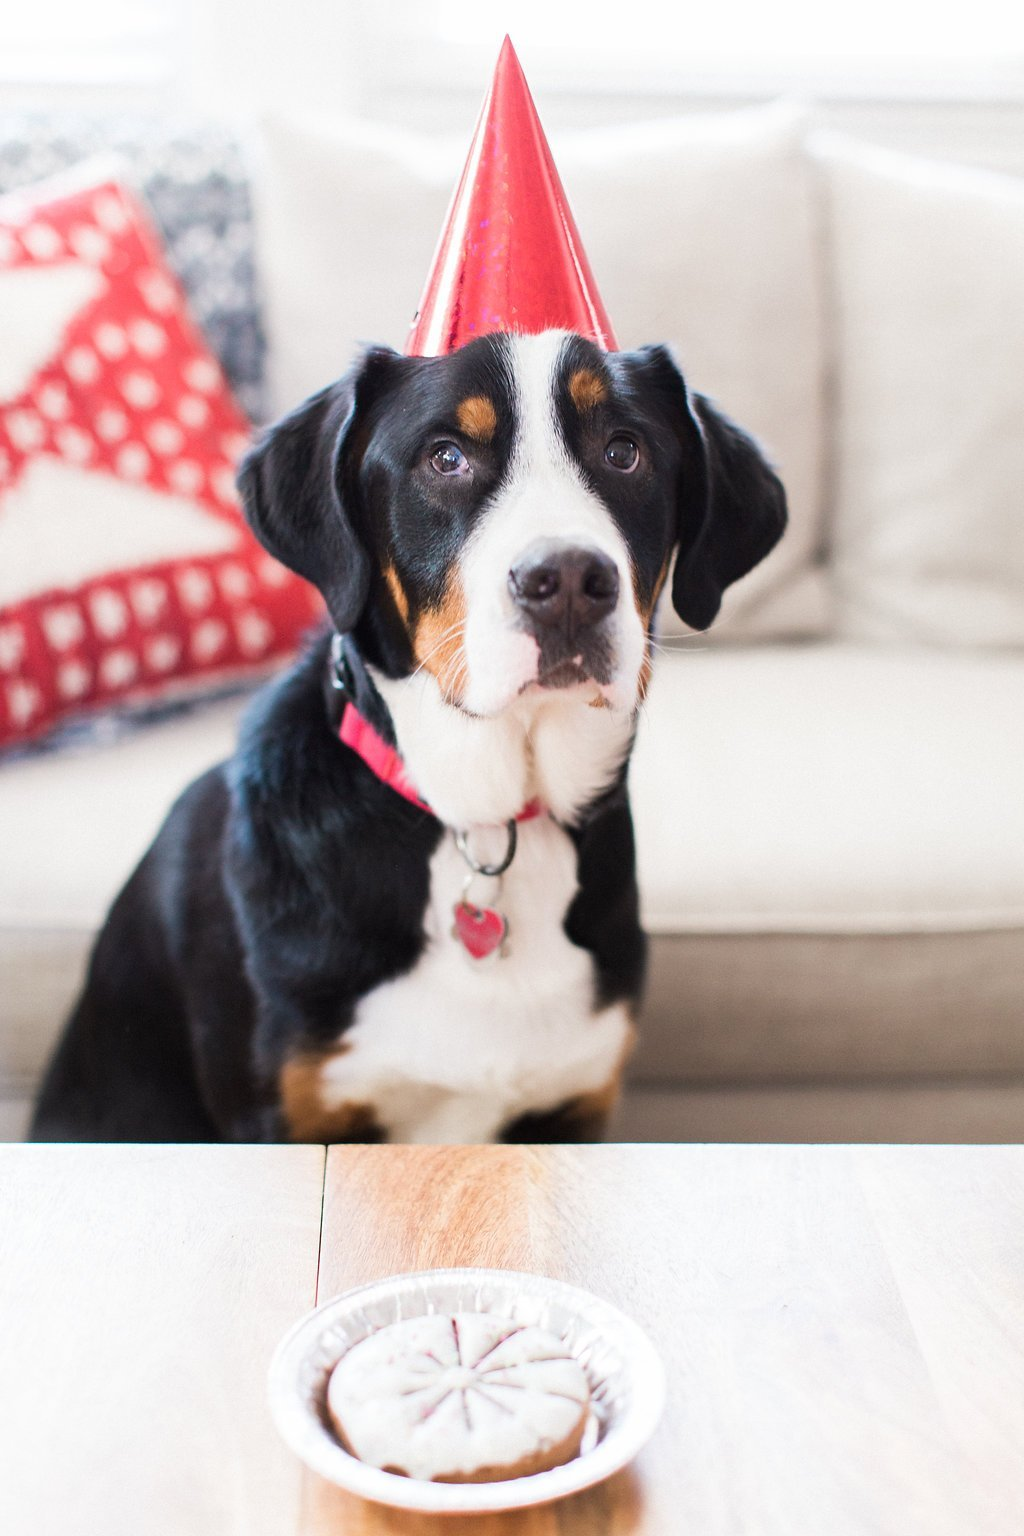 Bernese mountain dog wearing red cone birthday hat